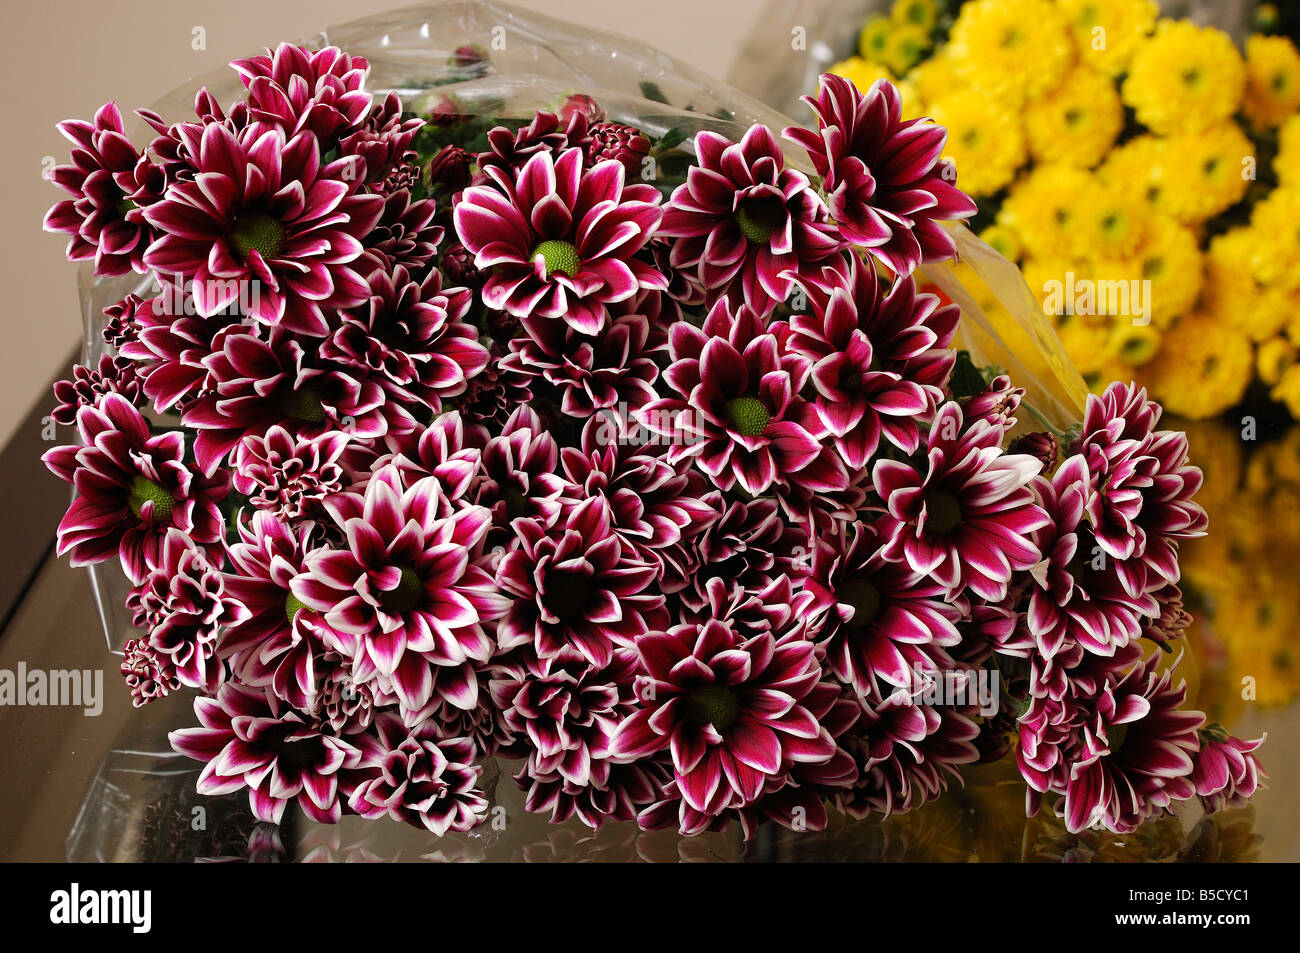 Two Tone Chrysanthemums often called mums - Stock Image